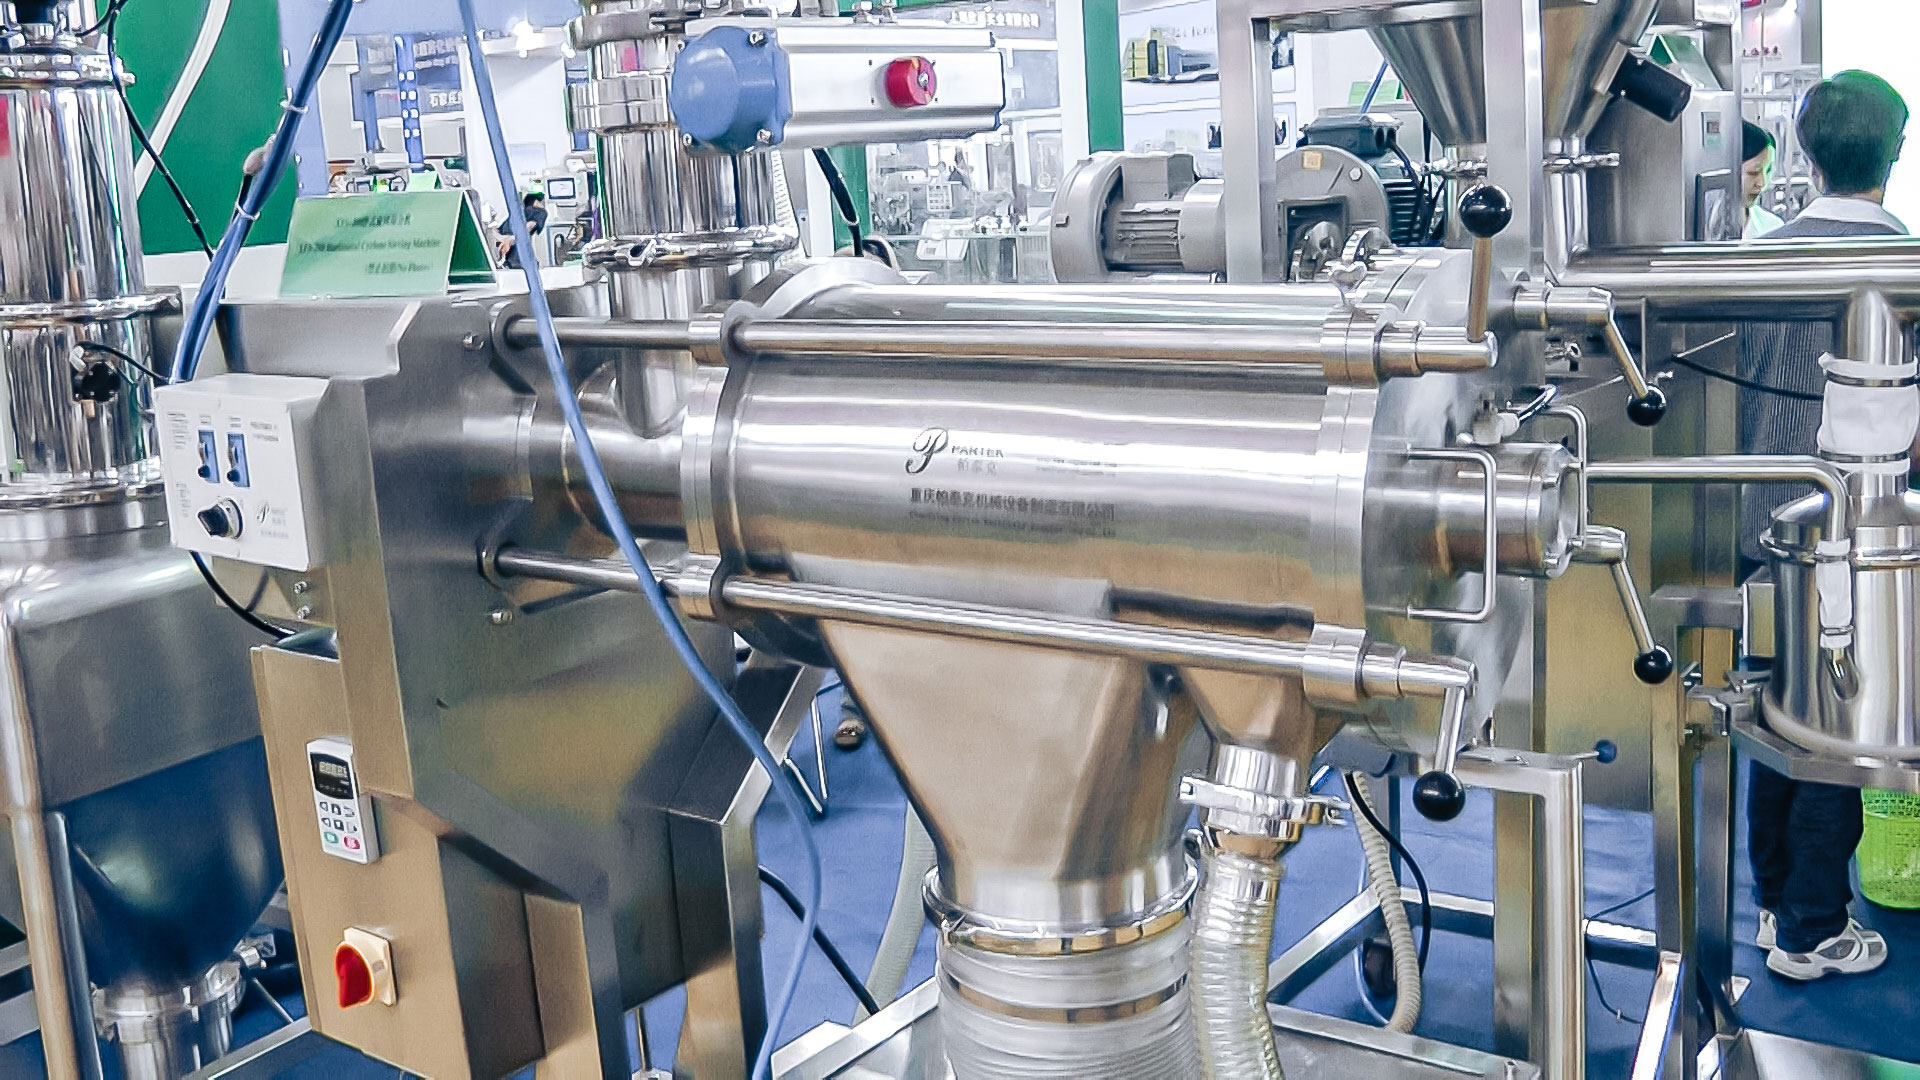 Automatic equipment for preparation and mixing of powders in pharmaceutical production Slovakia